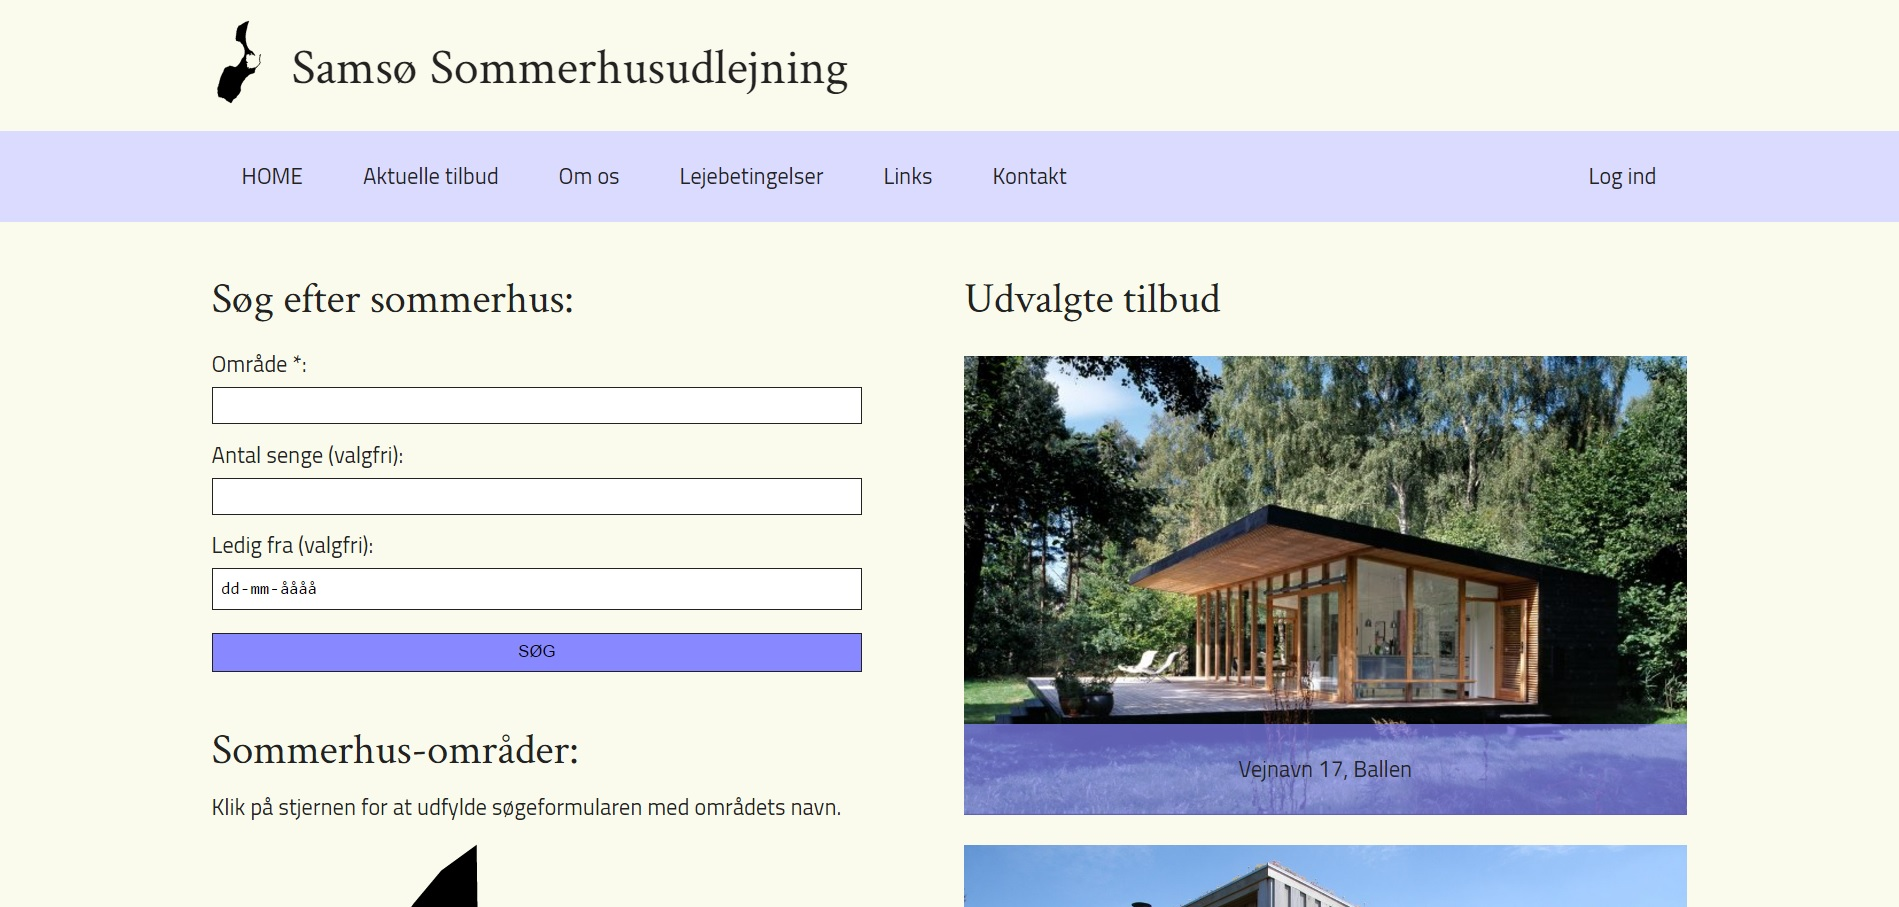 Create a website for a fictitious summerhouse rental company. Customers should be able to make reservations on the site.